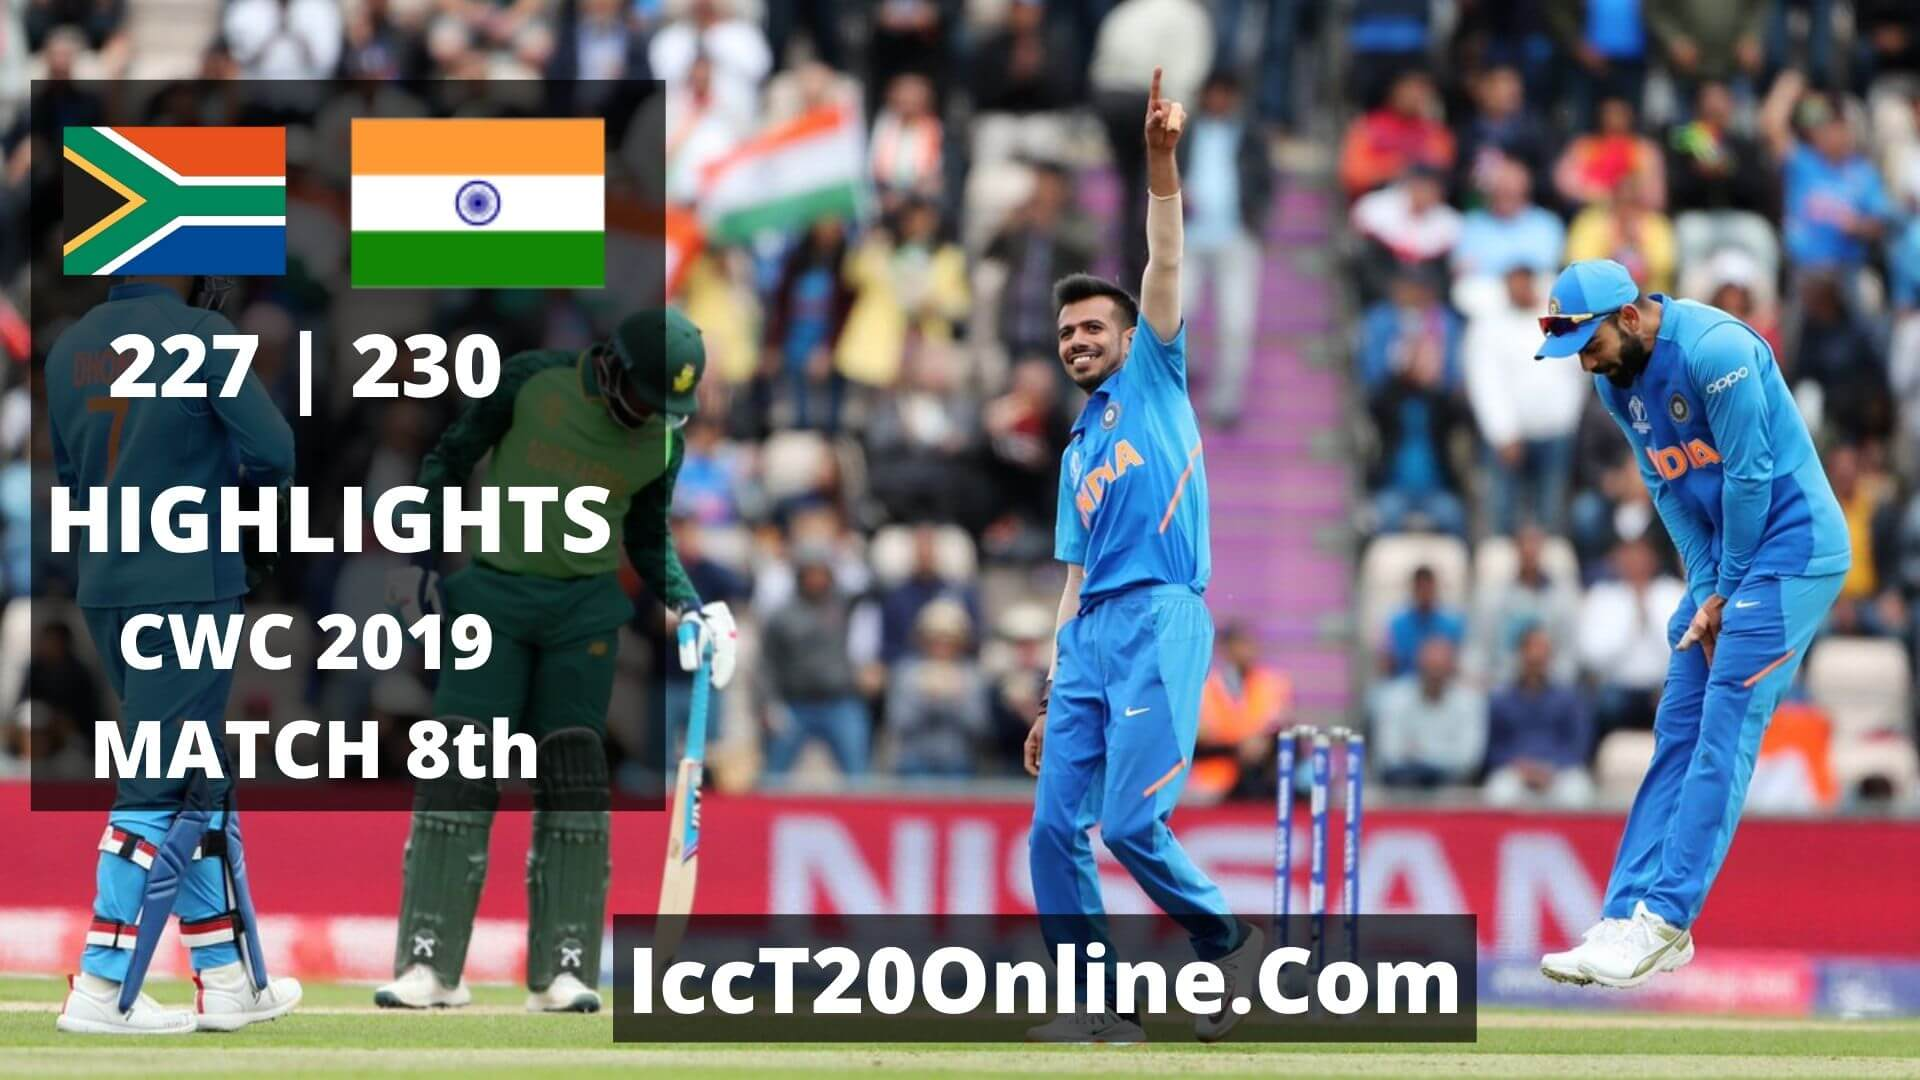 South Africa vs India Highlights CWC 2019 Match 8th